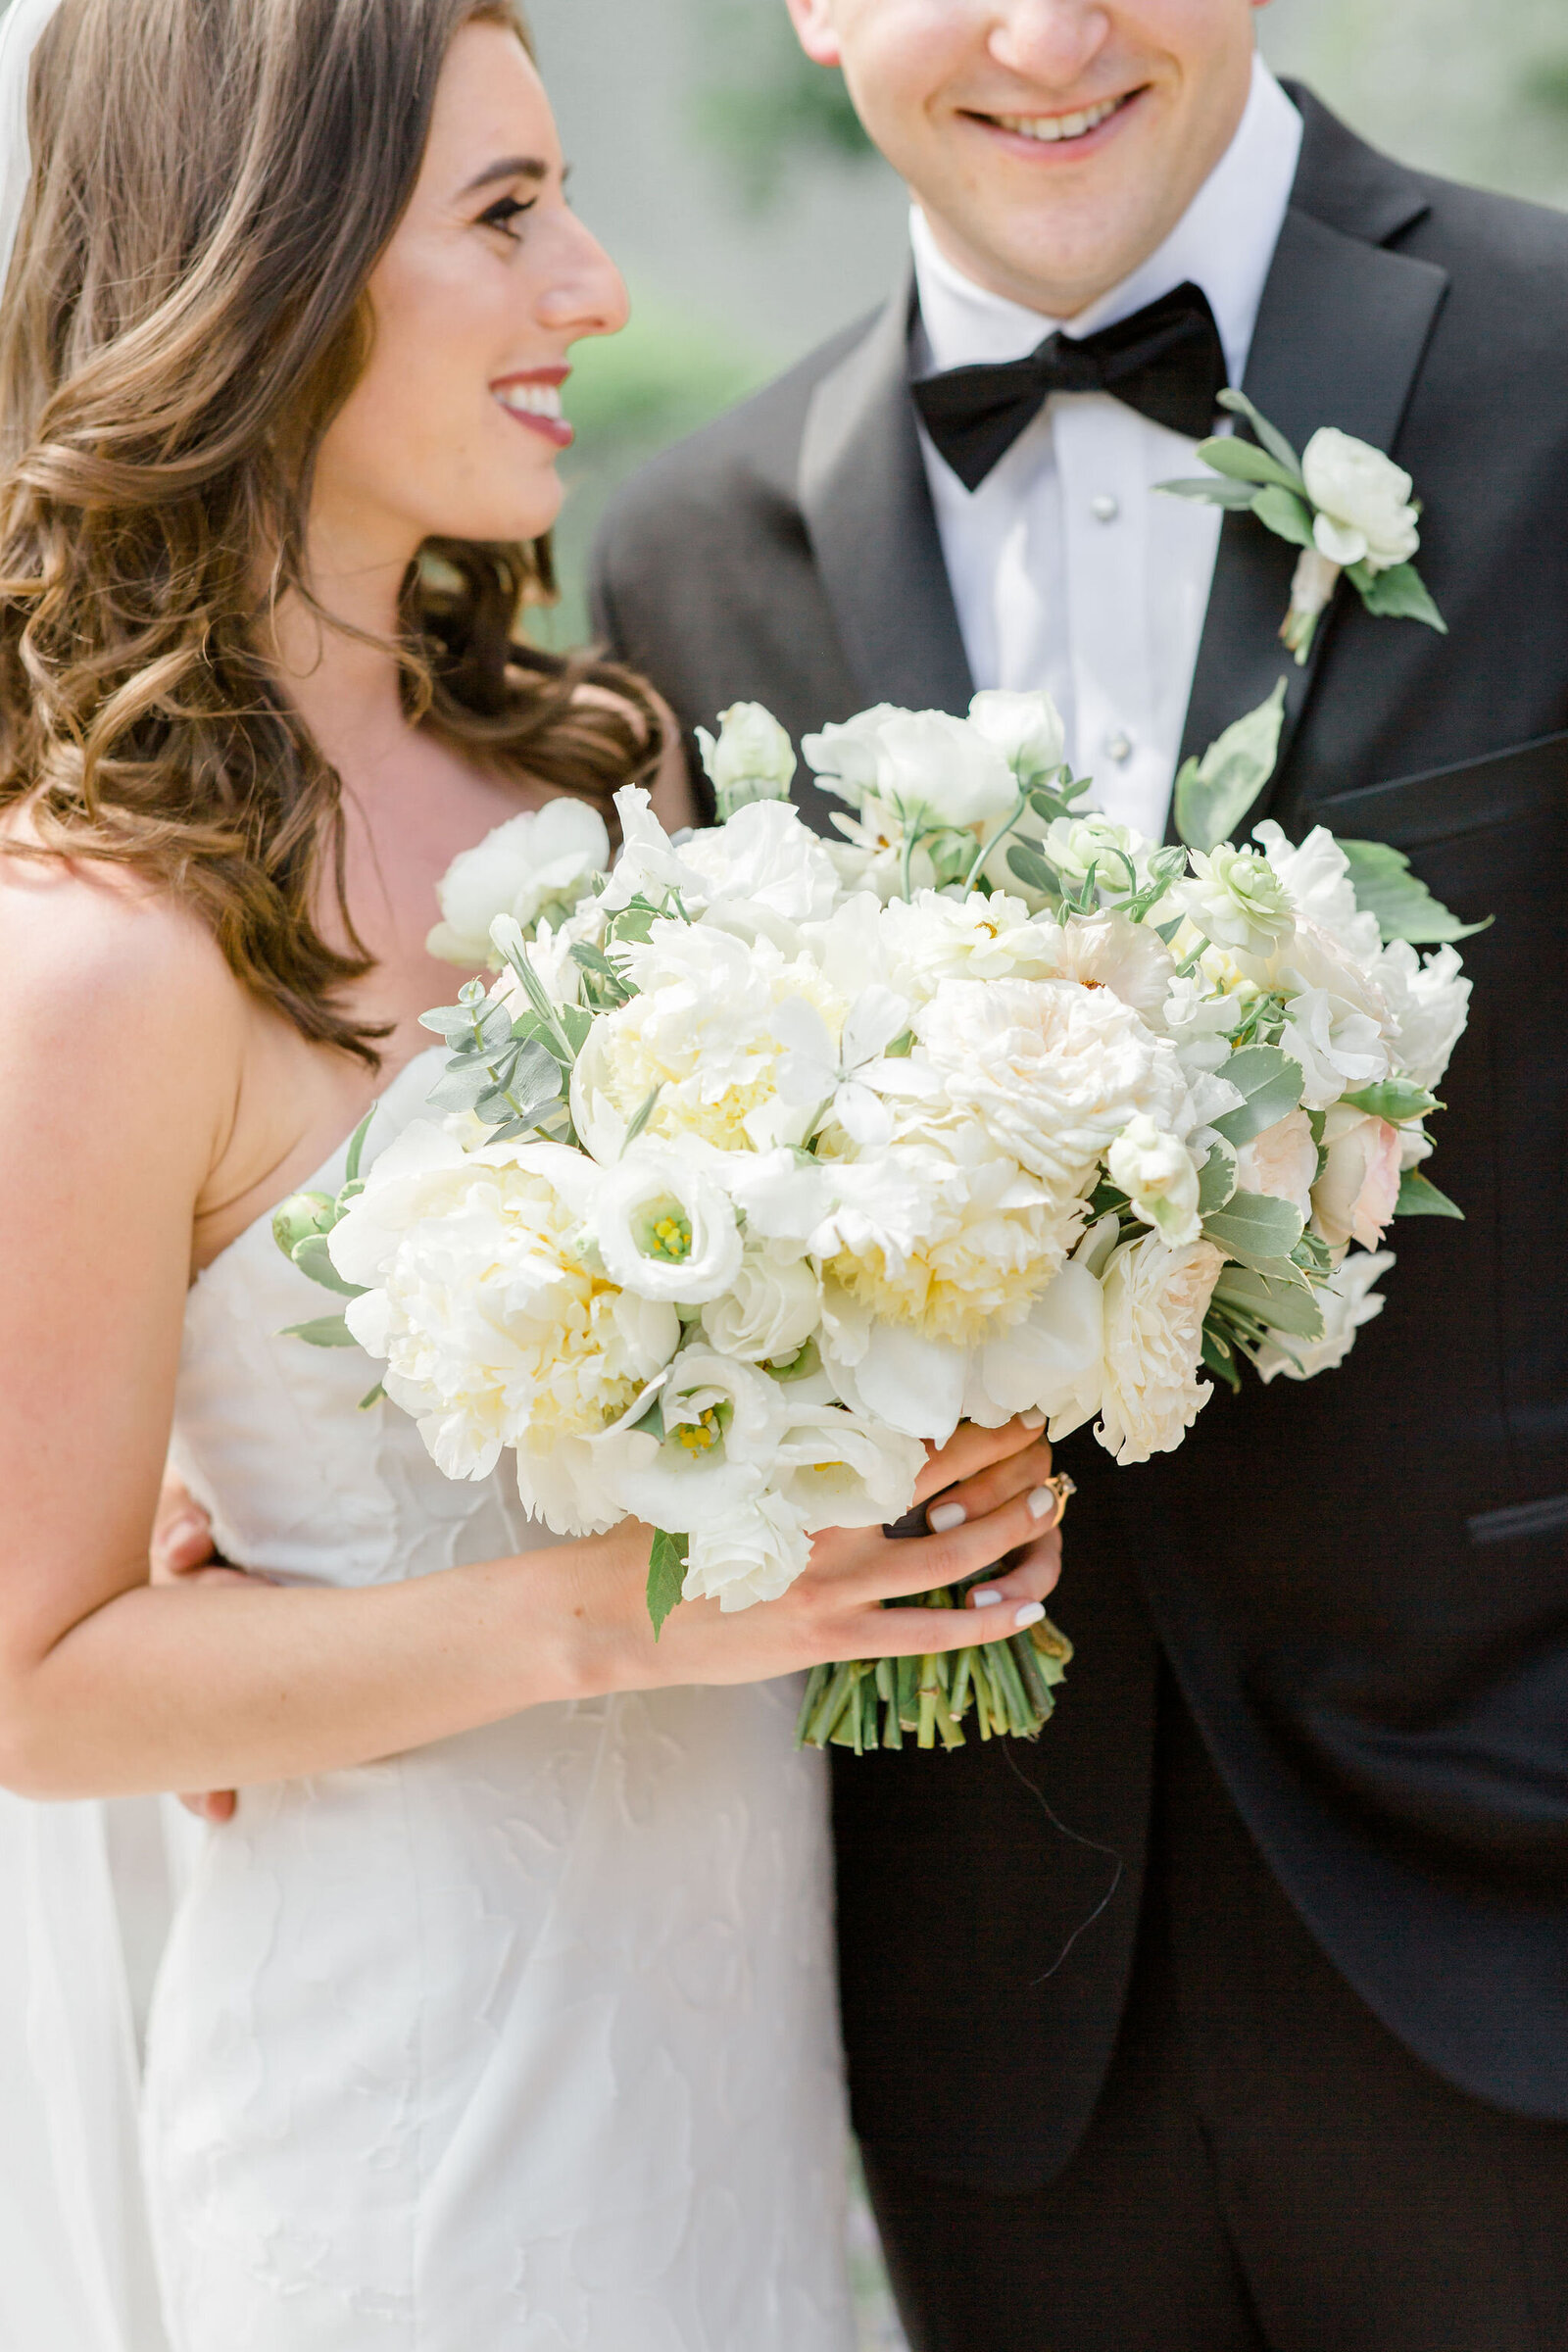 white and blush bridal bouquet, garden rose and peony, denver botanic gardens wedding, Black tie wedding, tuxedo, microwedding flowers, michelewithonel